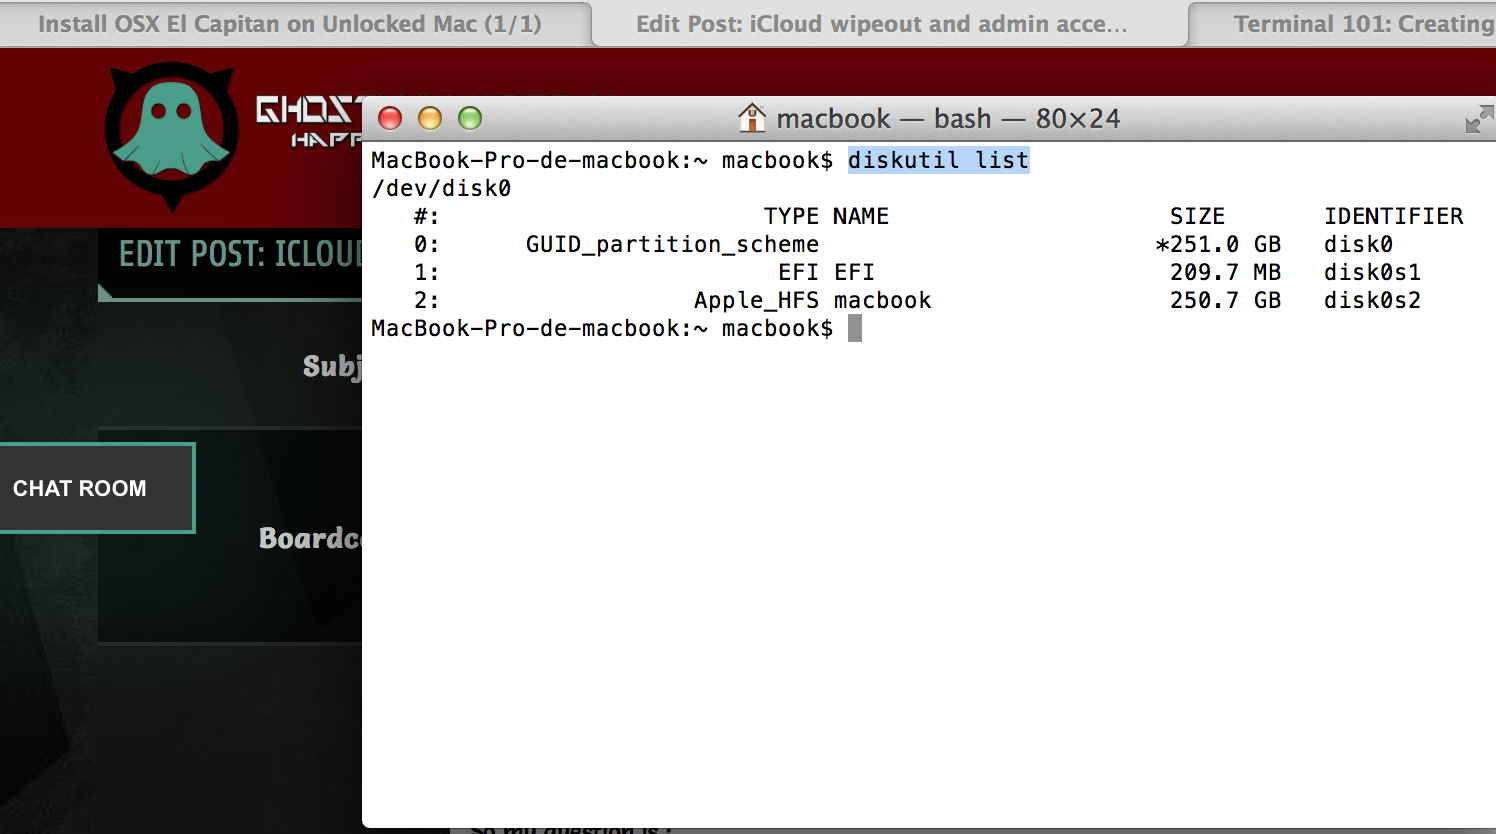 iCloud wipeout and admin access on EFI locked Mac - Ghostlyhaks Forum